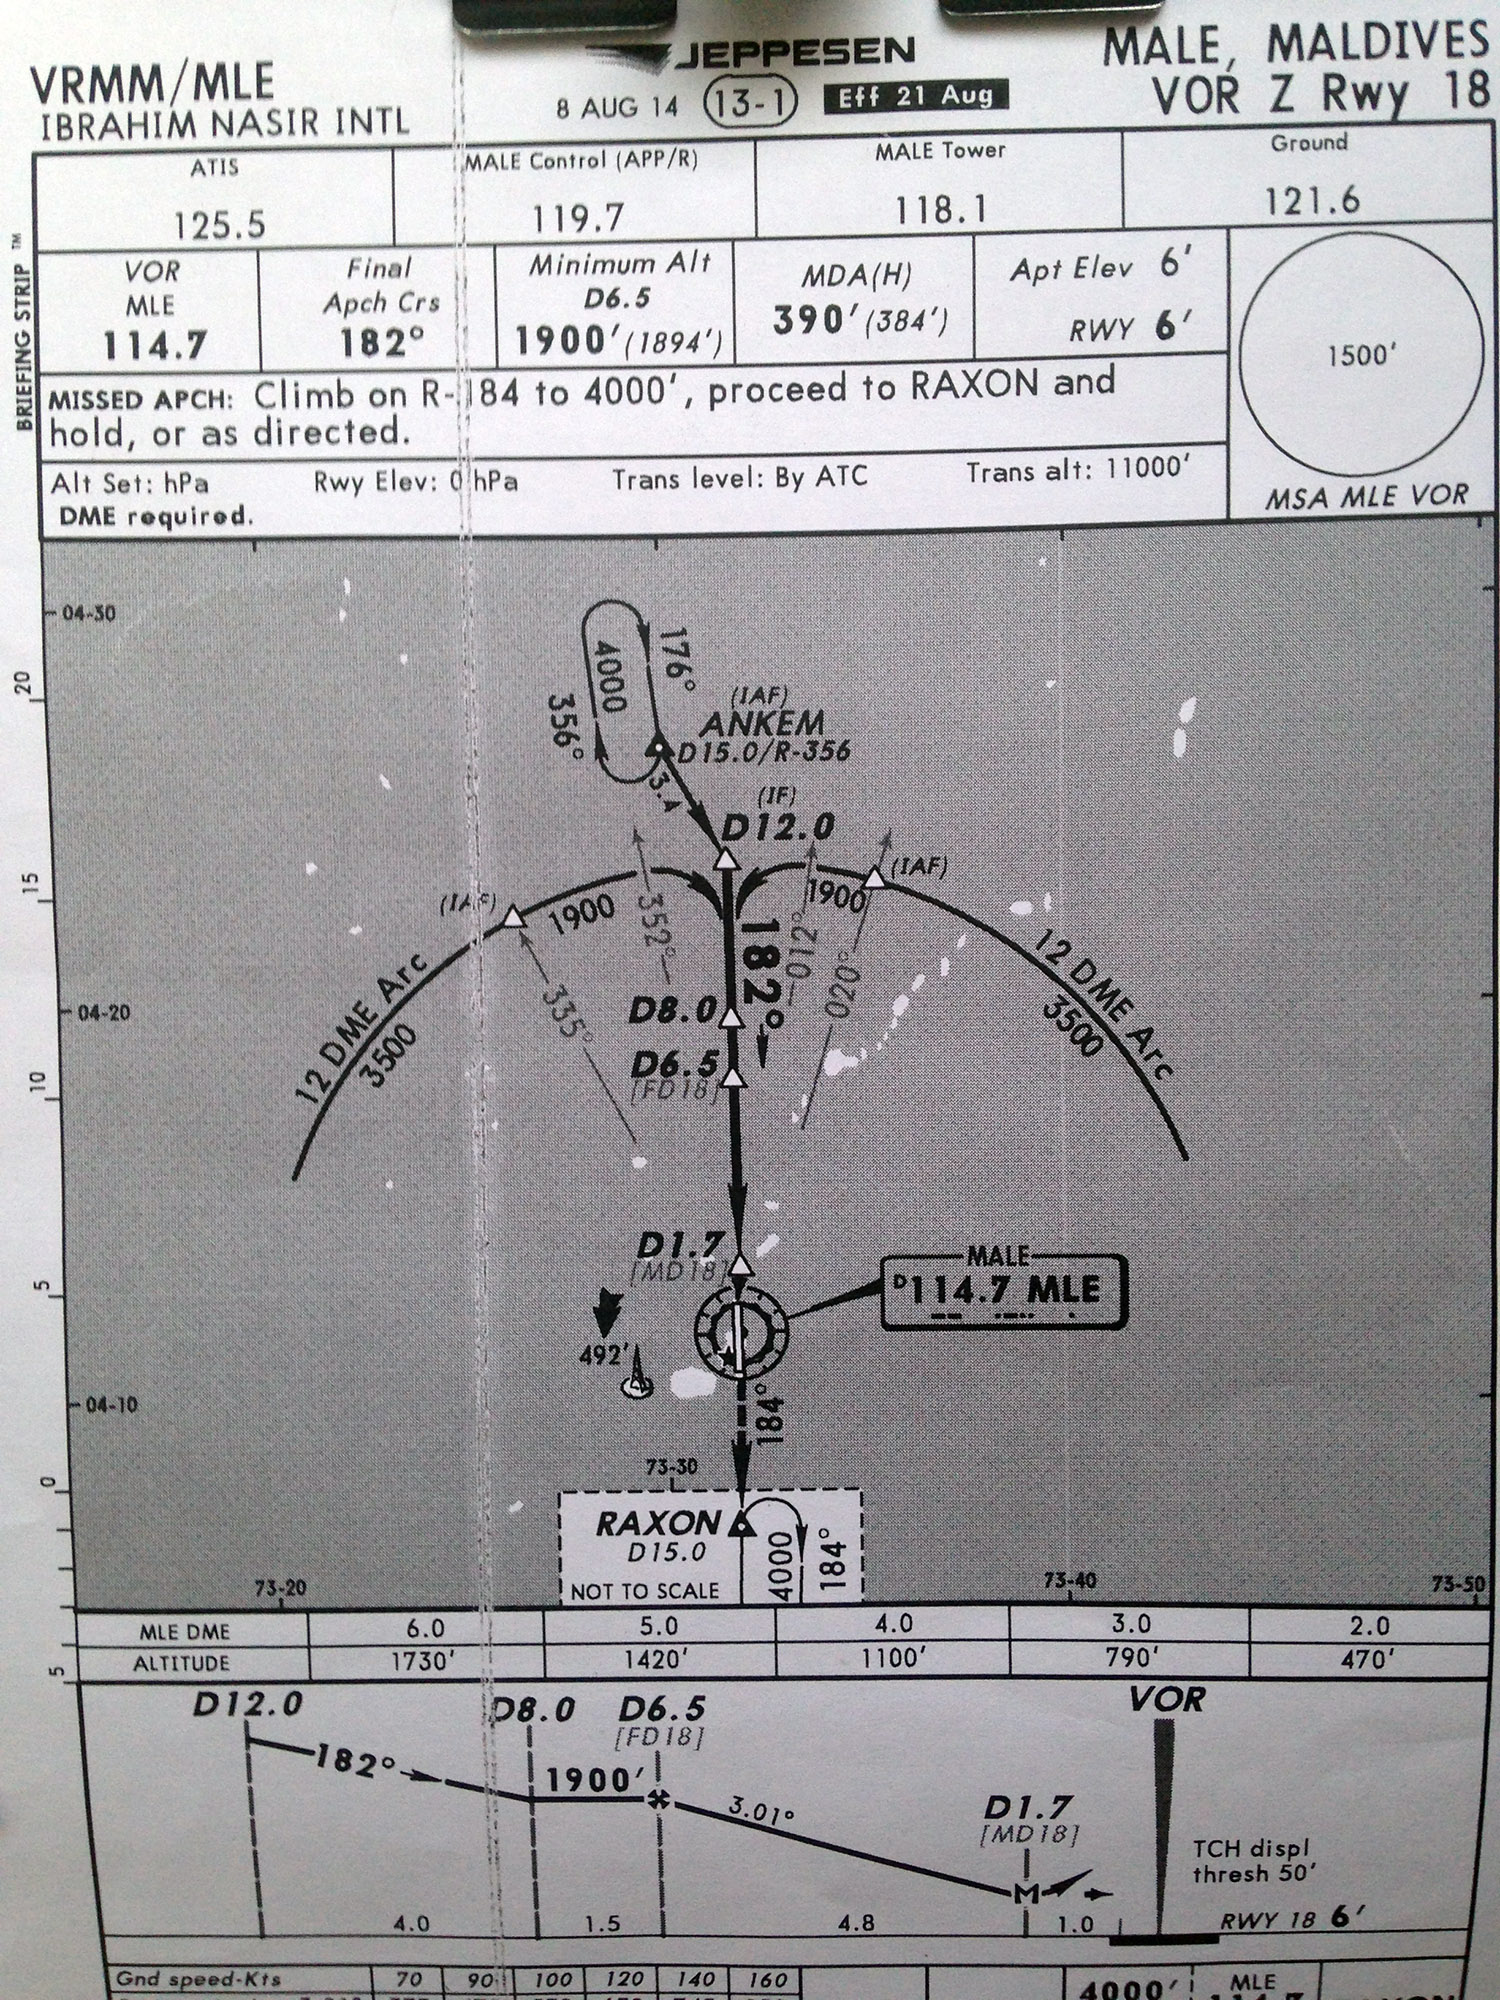 Carta Jeppesen de MALE